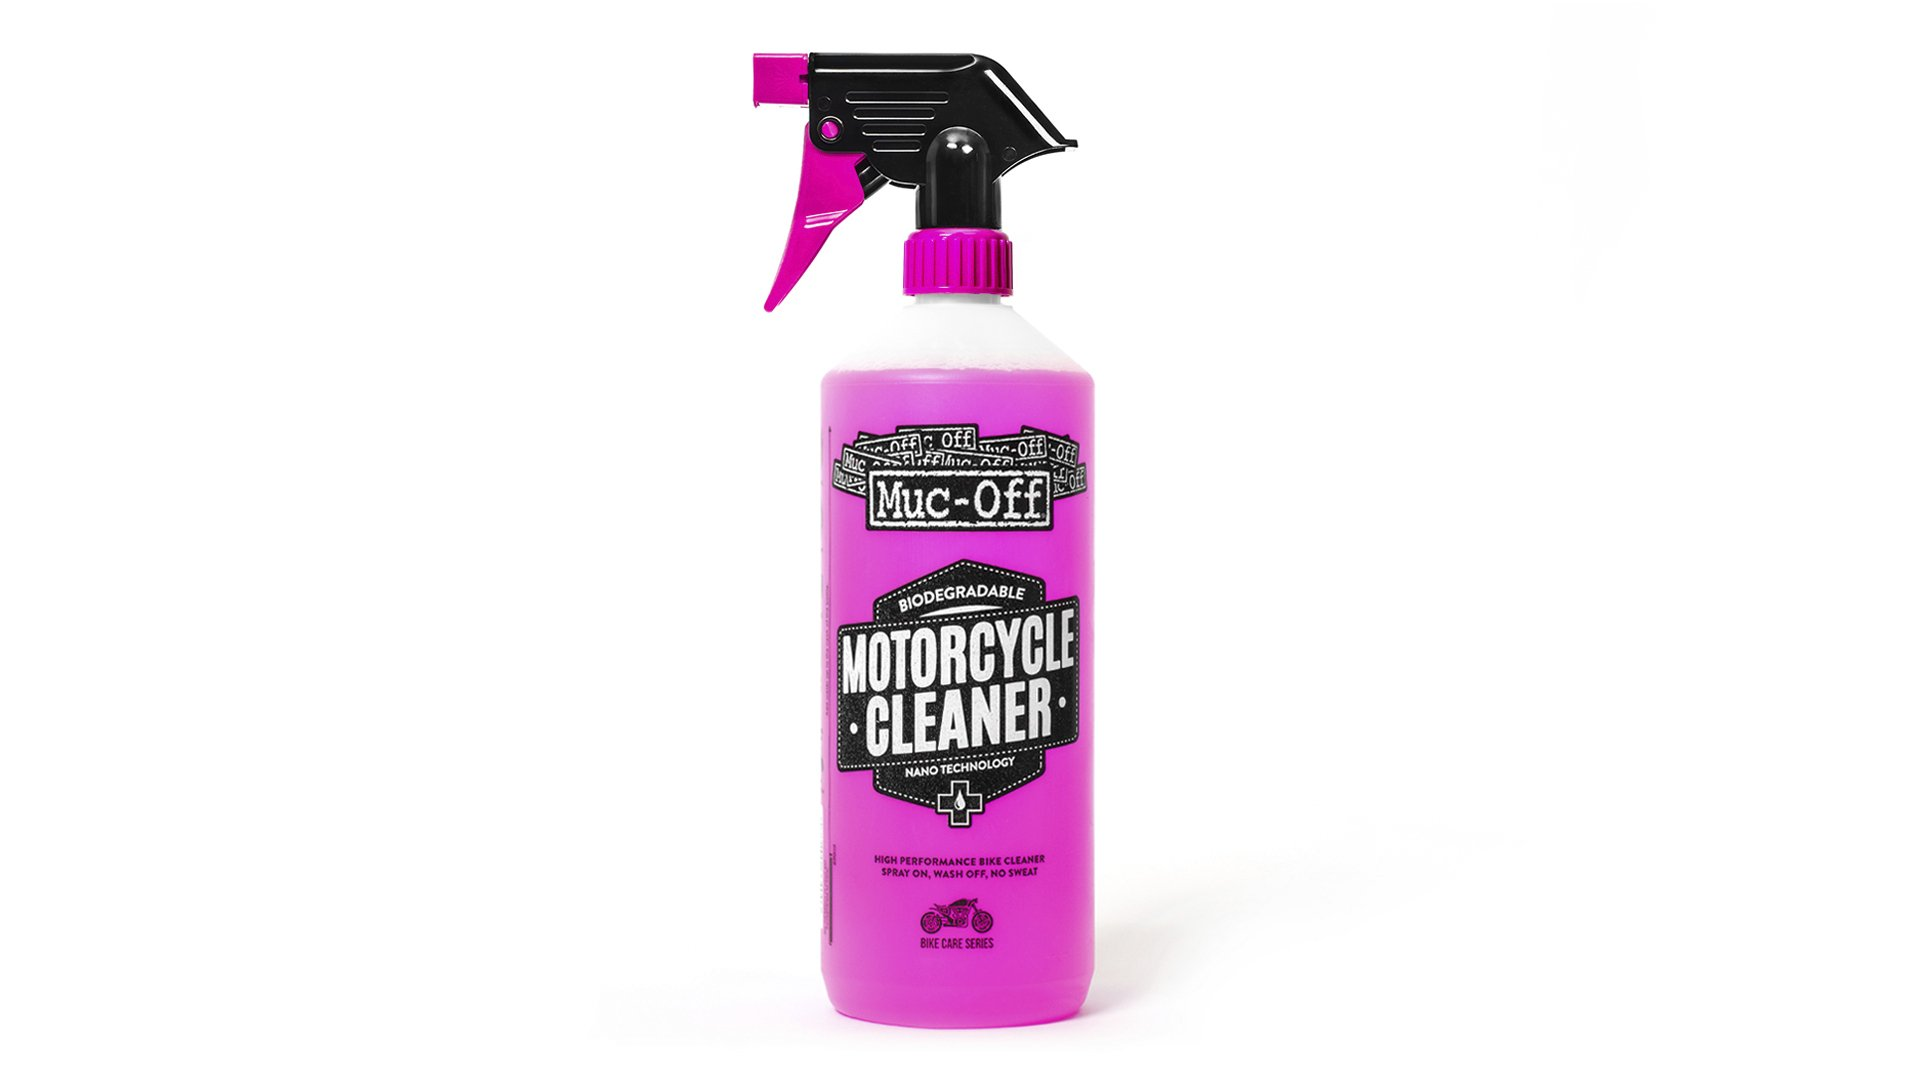 Muc Off 664US Pink Motorcycle Cleaner, 35.2 Fluid_Ounces by Muc Off